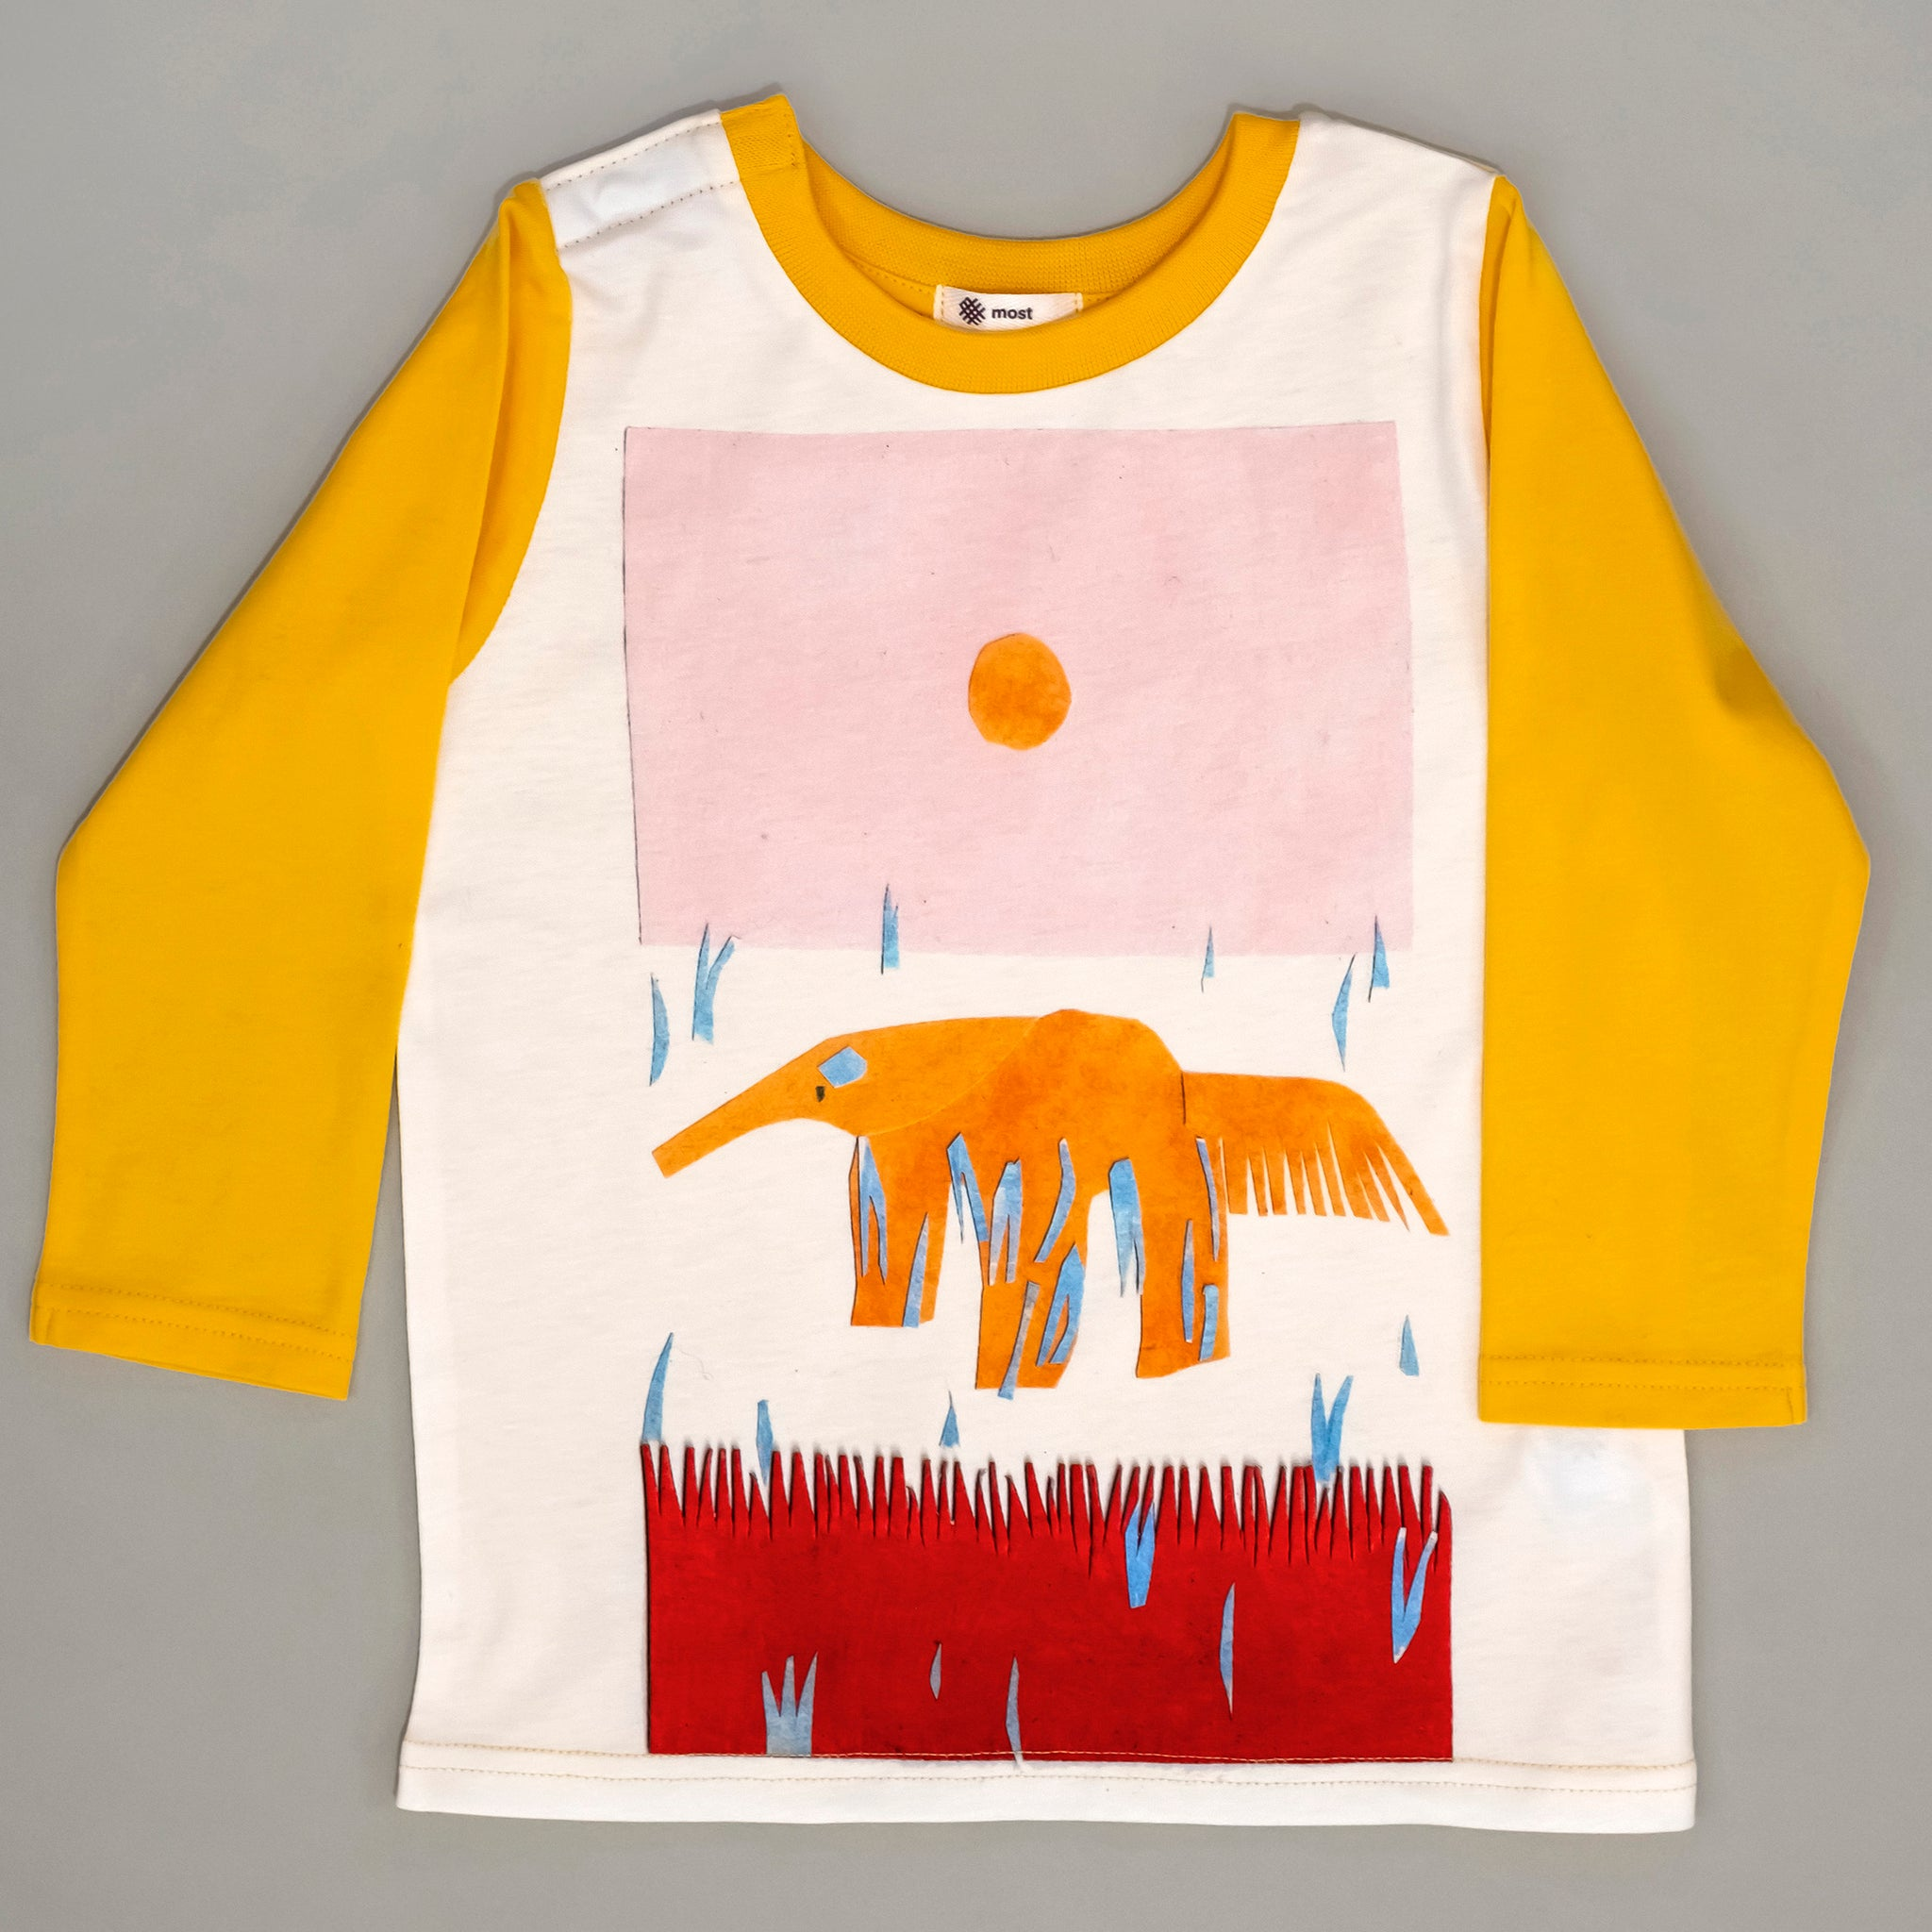 Anteater kids tee - yellow